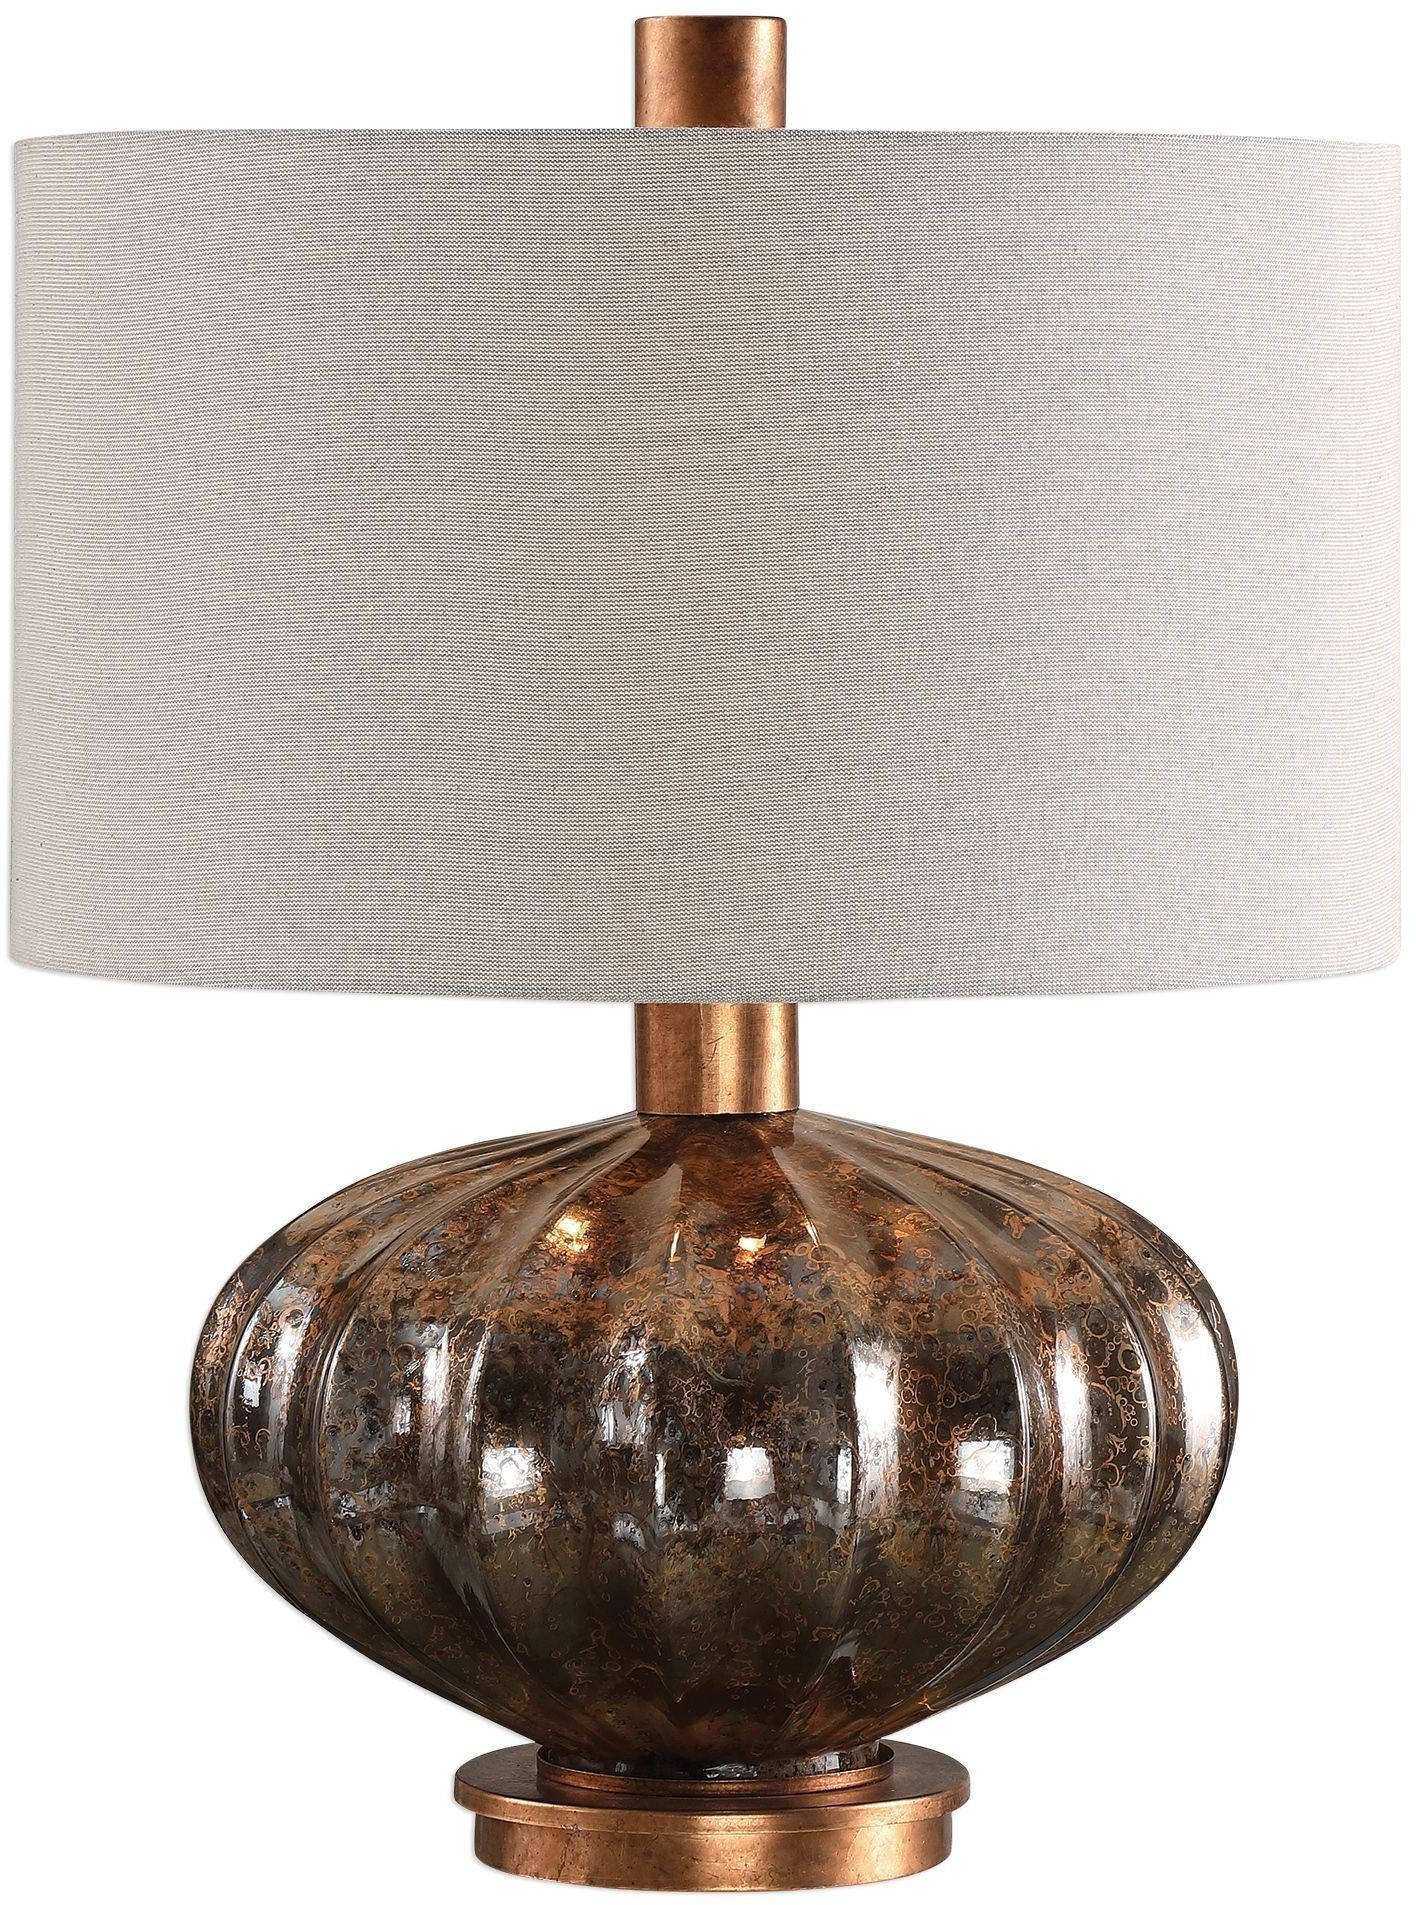 Dragley Bronze Mercury Glass Lamp From Uttermost Coleman Furniture